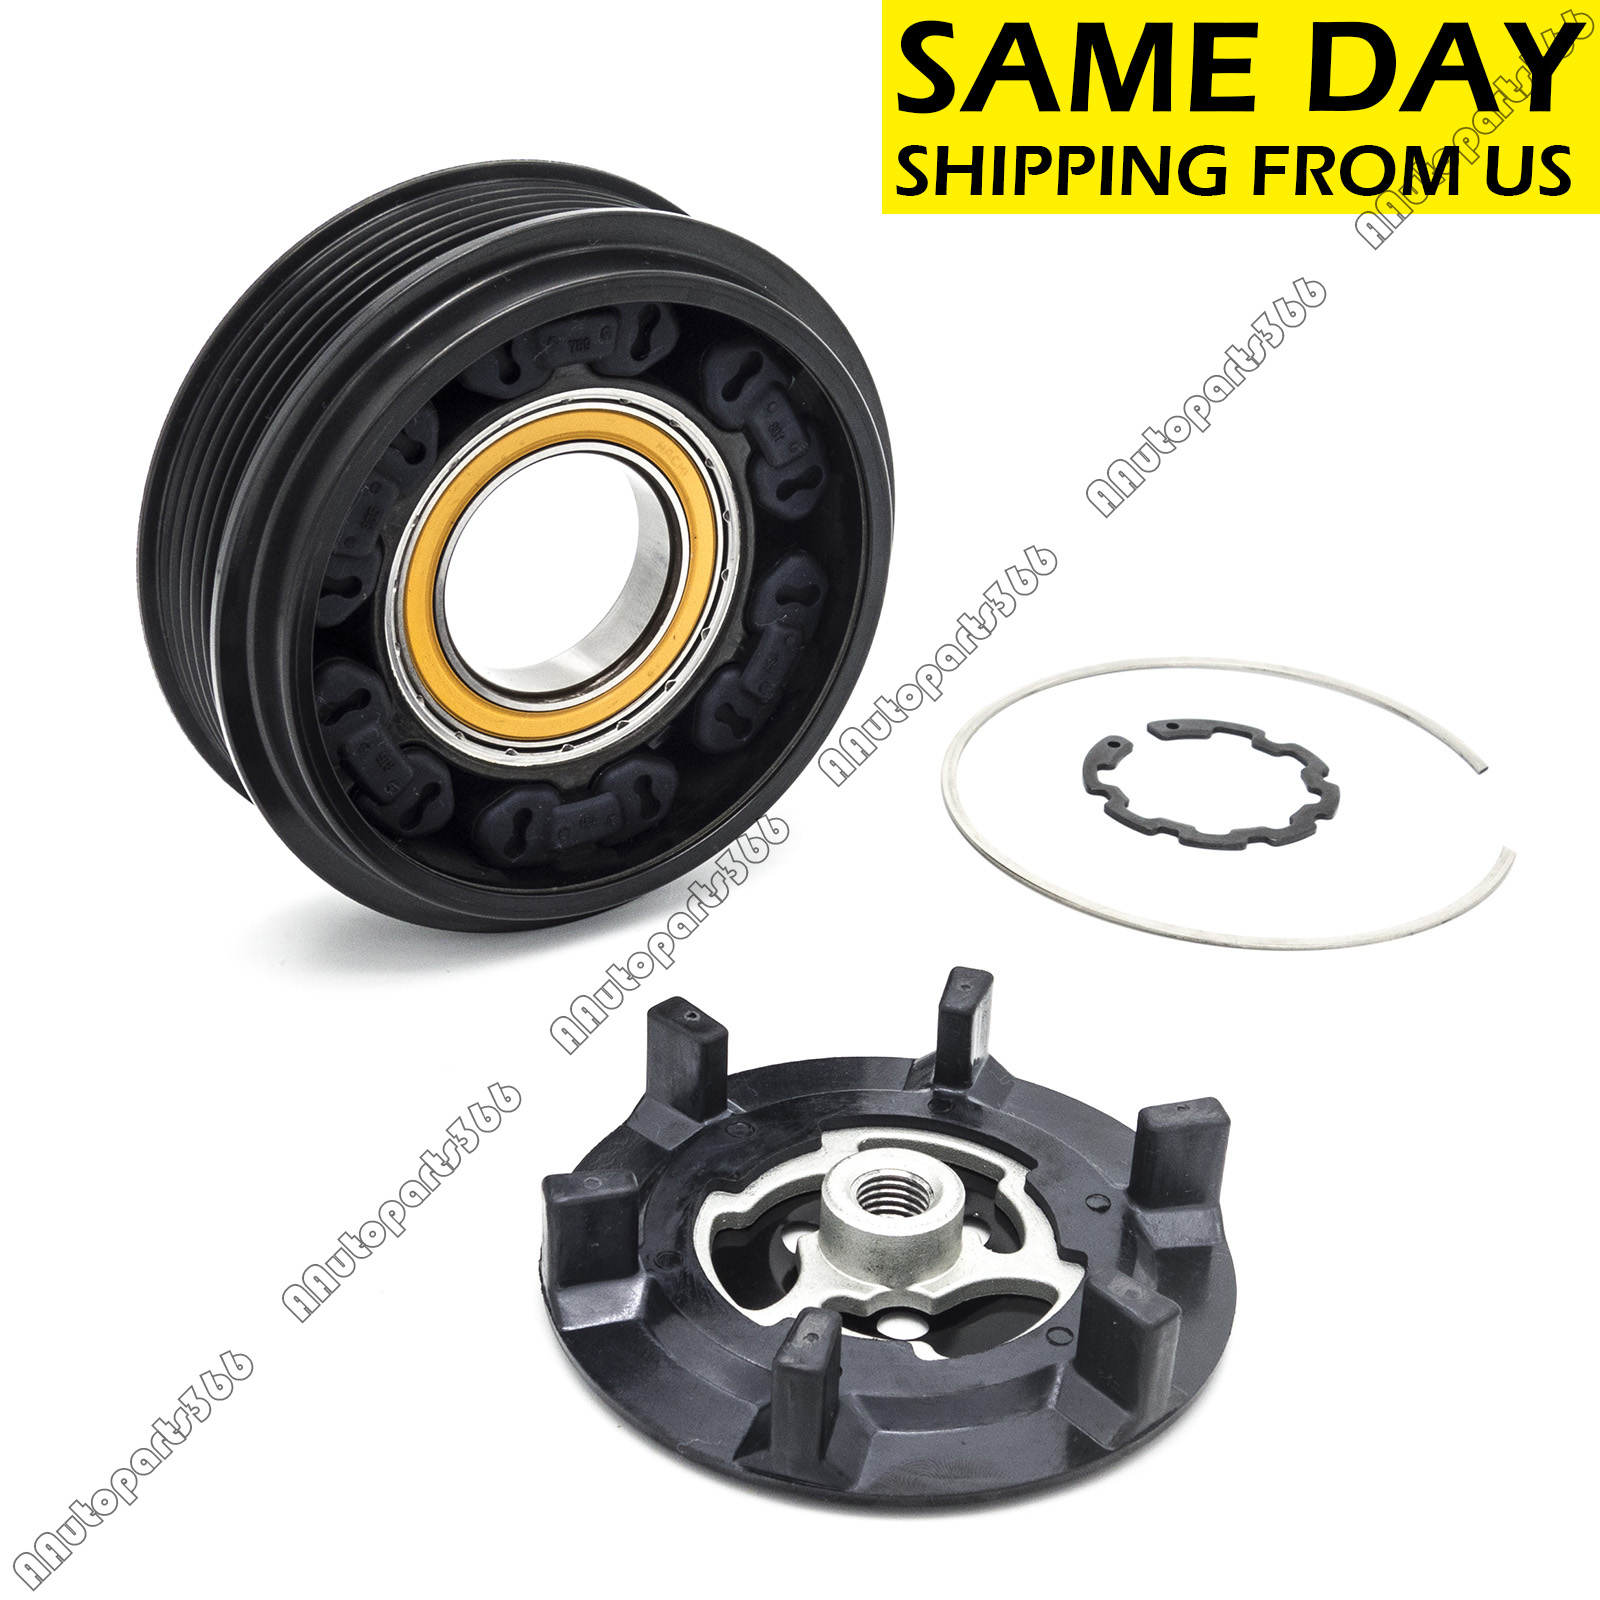 A//C AC Compressor Clutch Kit Fit For Mercedes C240 C320 Models W//6 Groove Pulley